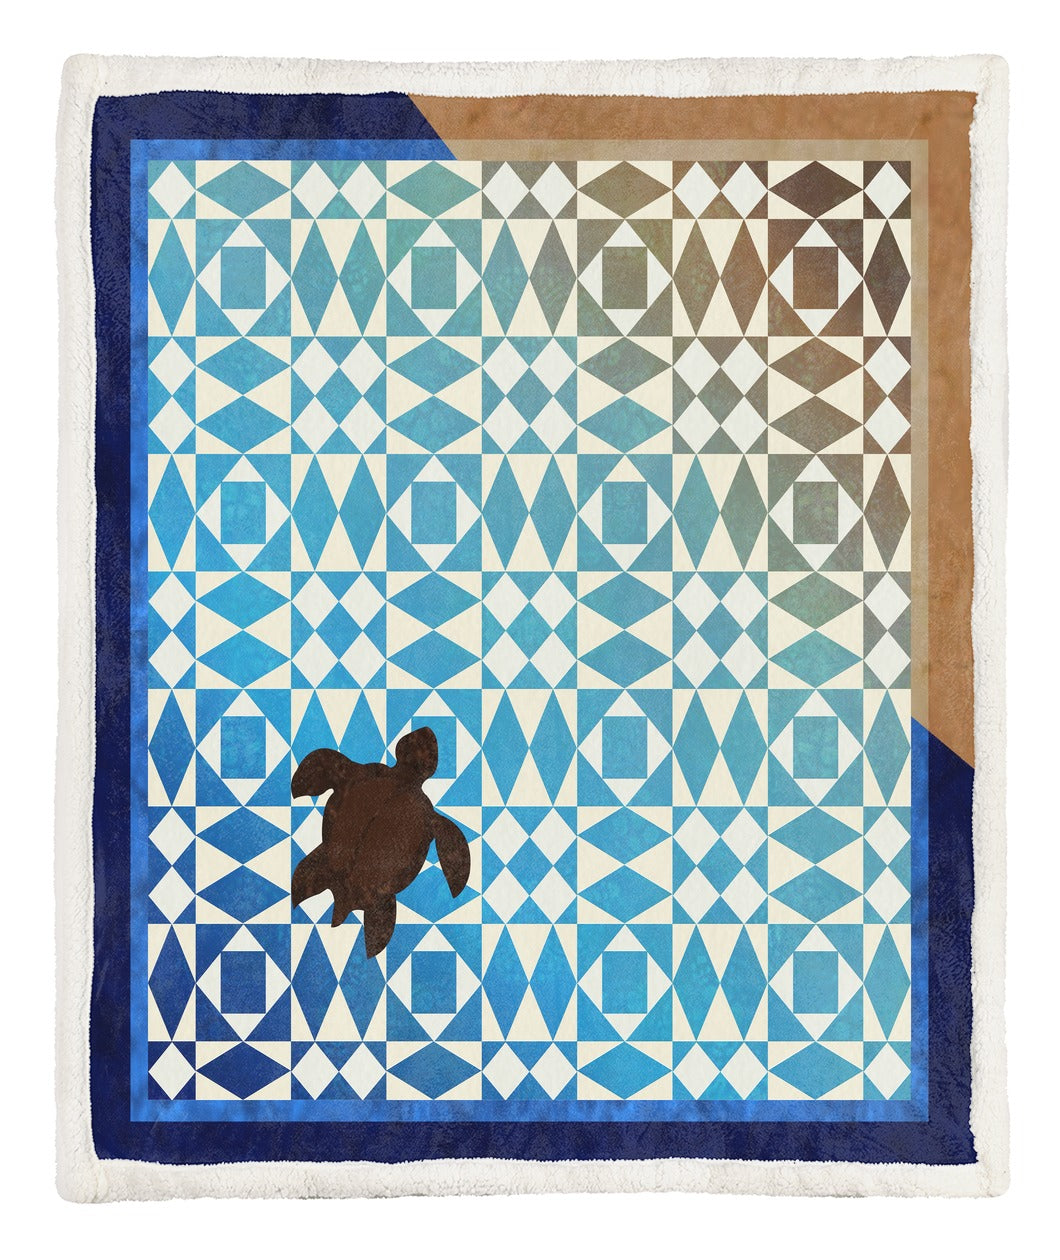 Turtle Throw Blanket TABCCC19101181